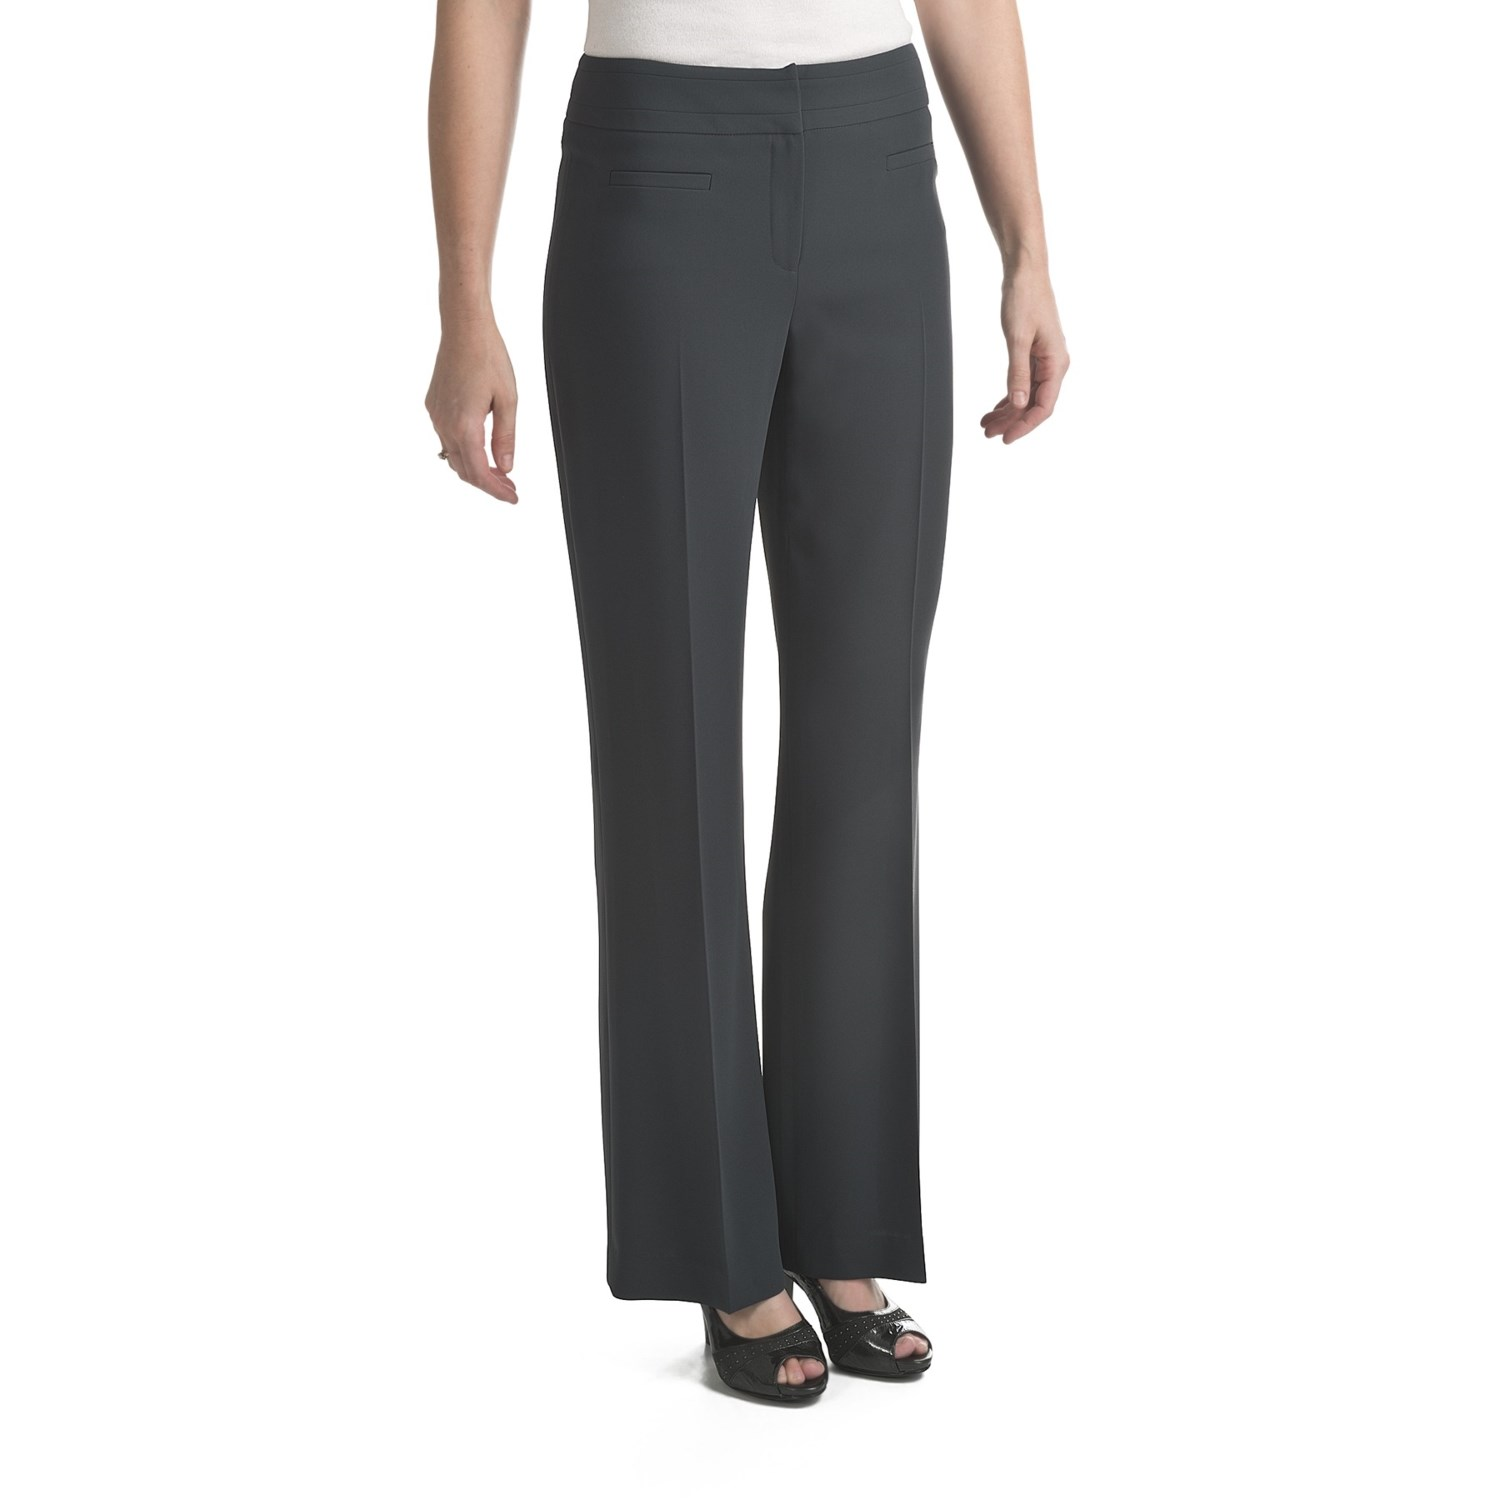 Find great deals on eBay for women career pants. Shop with confidence.